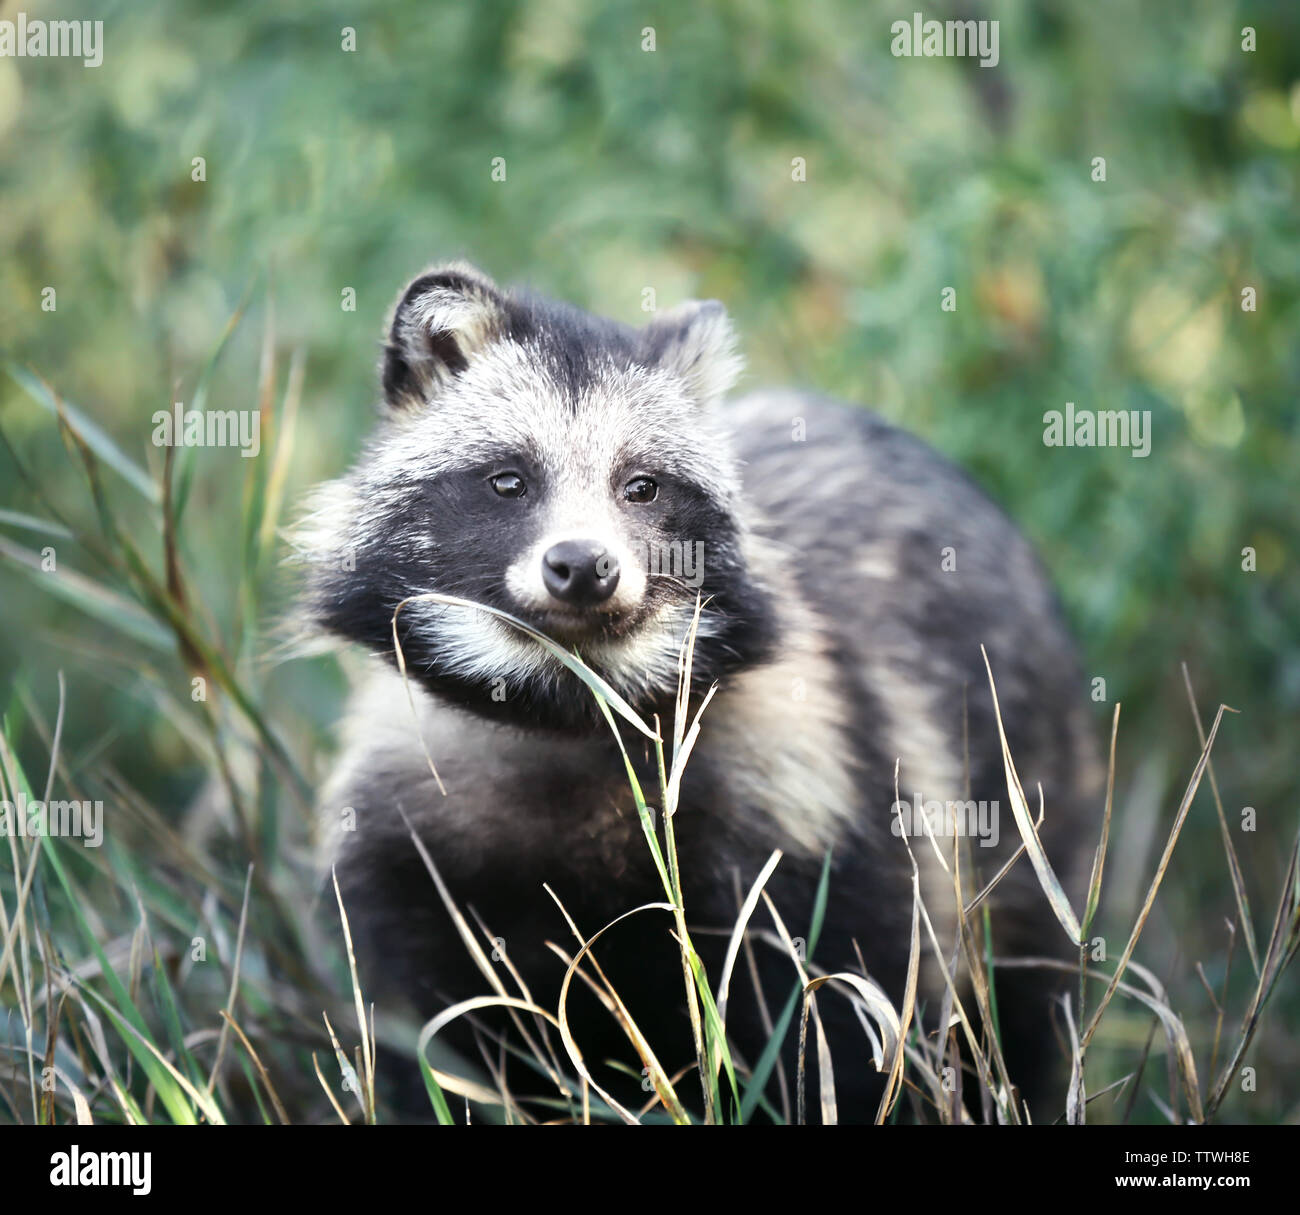 Racoon Dog Pet Stock Photos & Racoon Dog Pet Stock Images